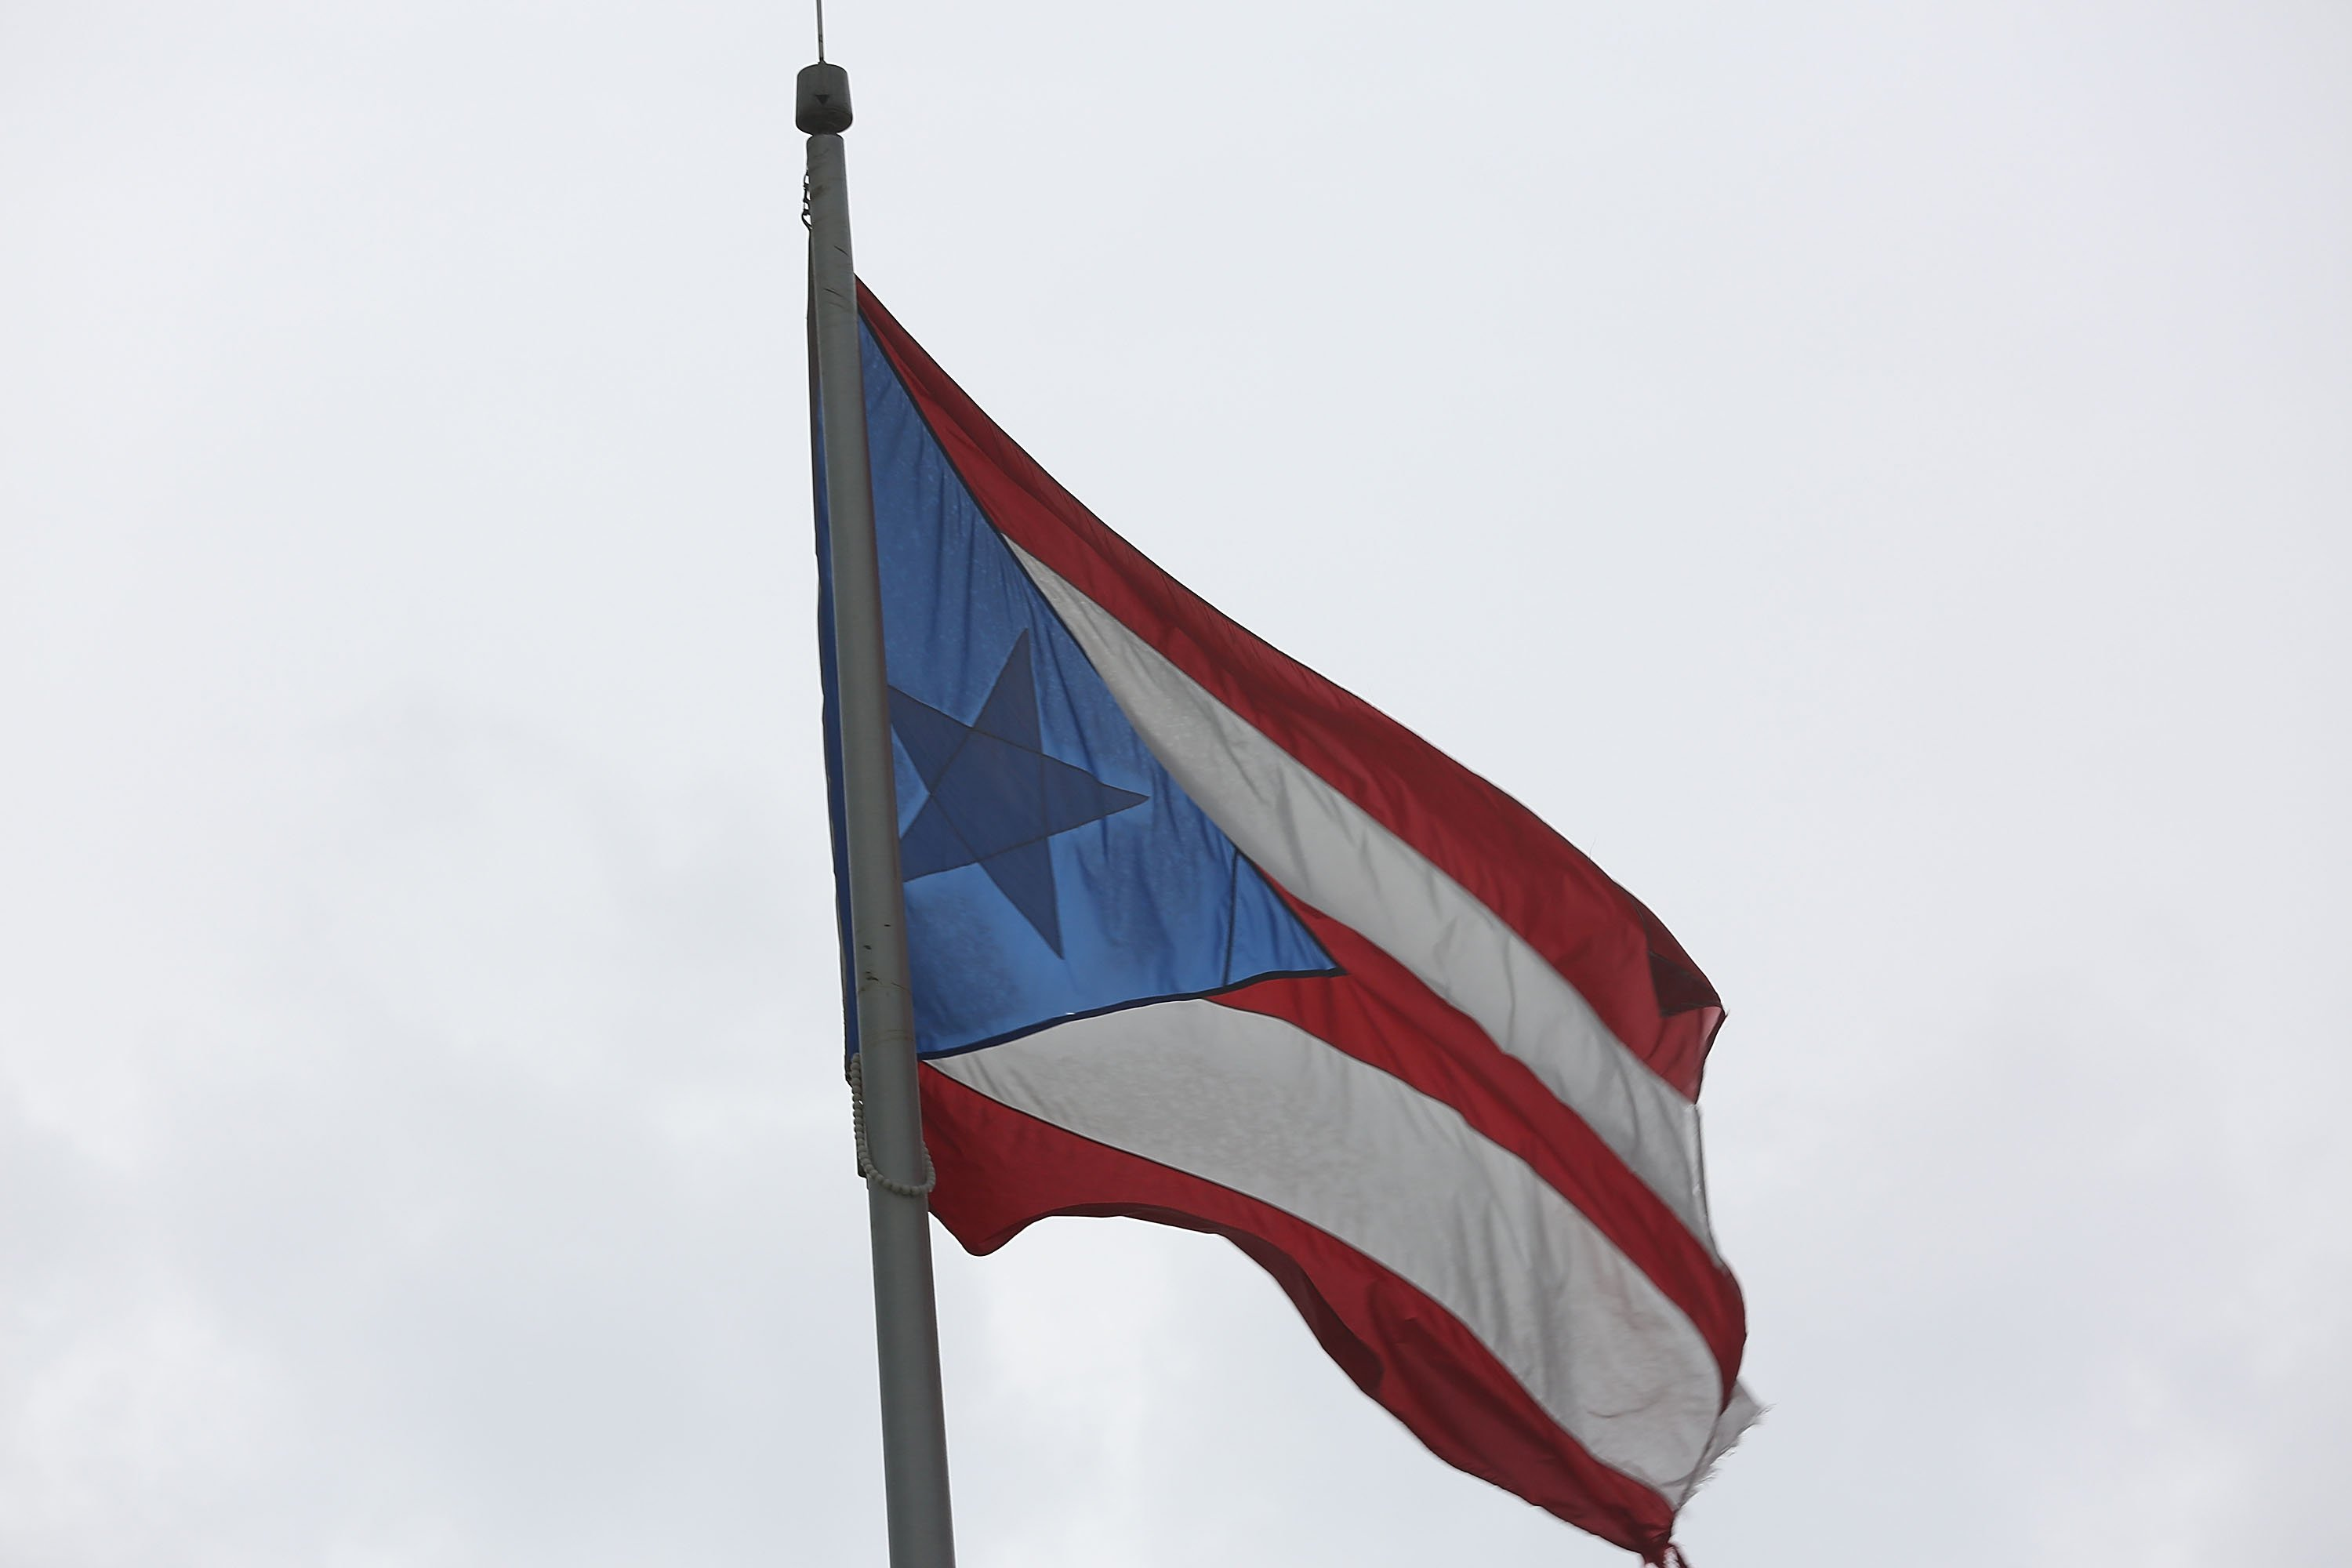 Two-thirds of Americans support statehood for Puerto Rico, Gallup finds